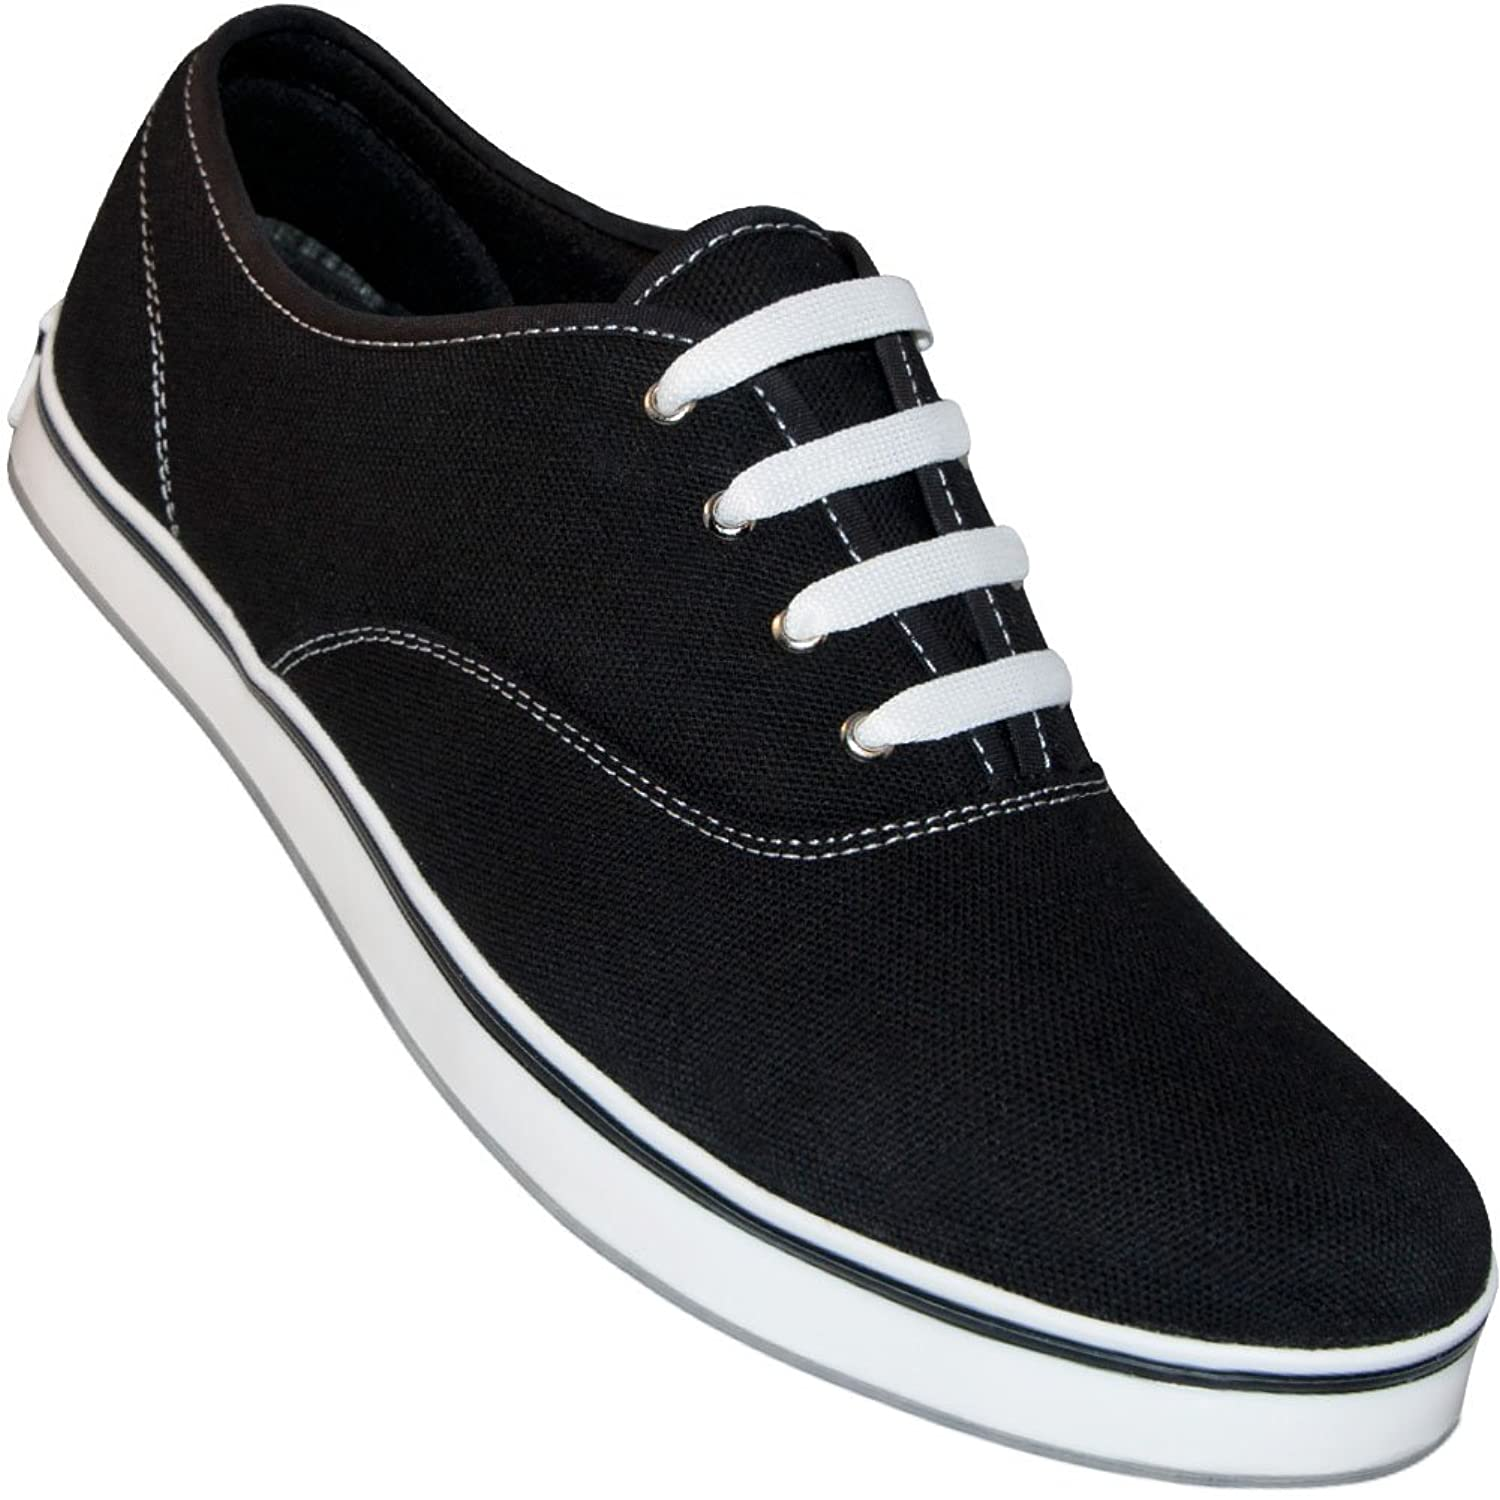 1960s Mens Shoes- Retro, Mod, Vintage Inspired Aris Allen Mens Black Classic Dress Dance Sneaker $48.95 AT vintagedancer.com